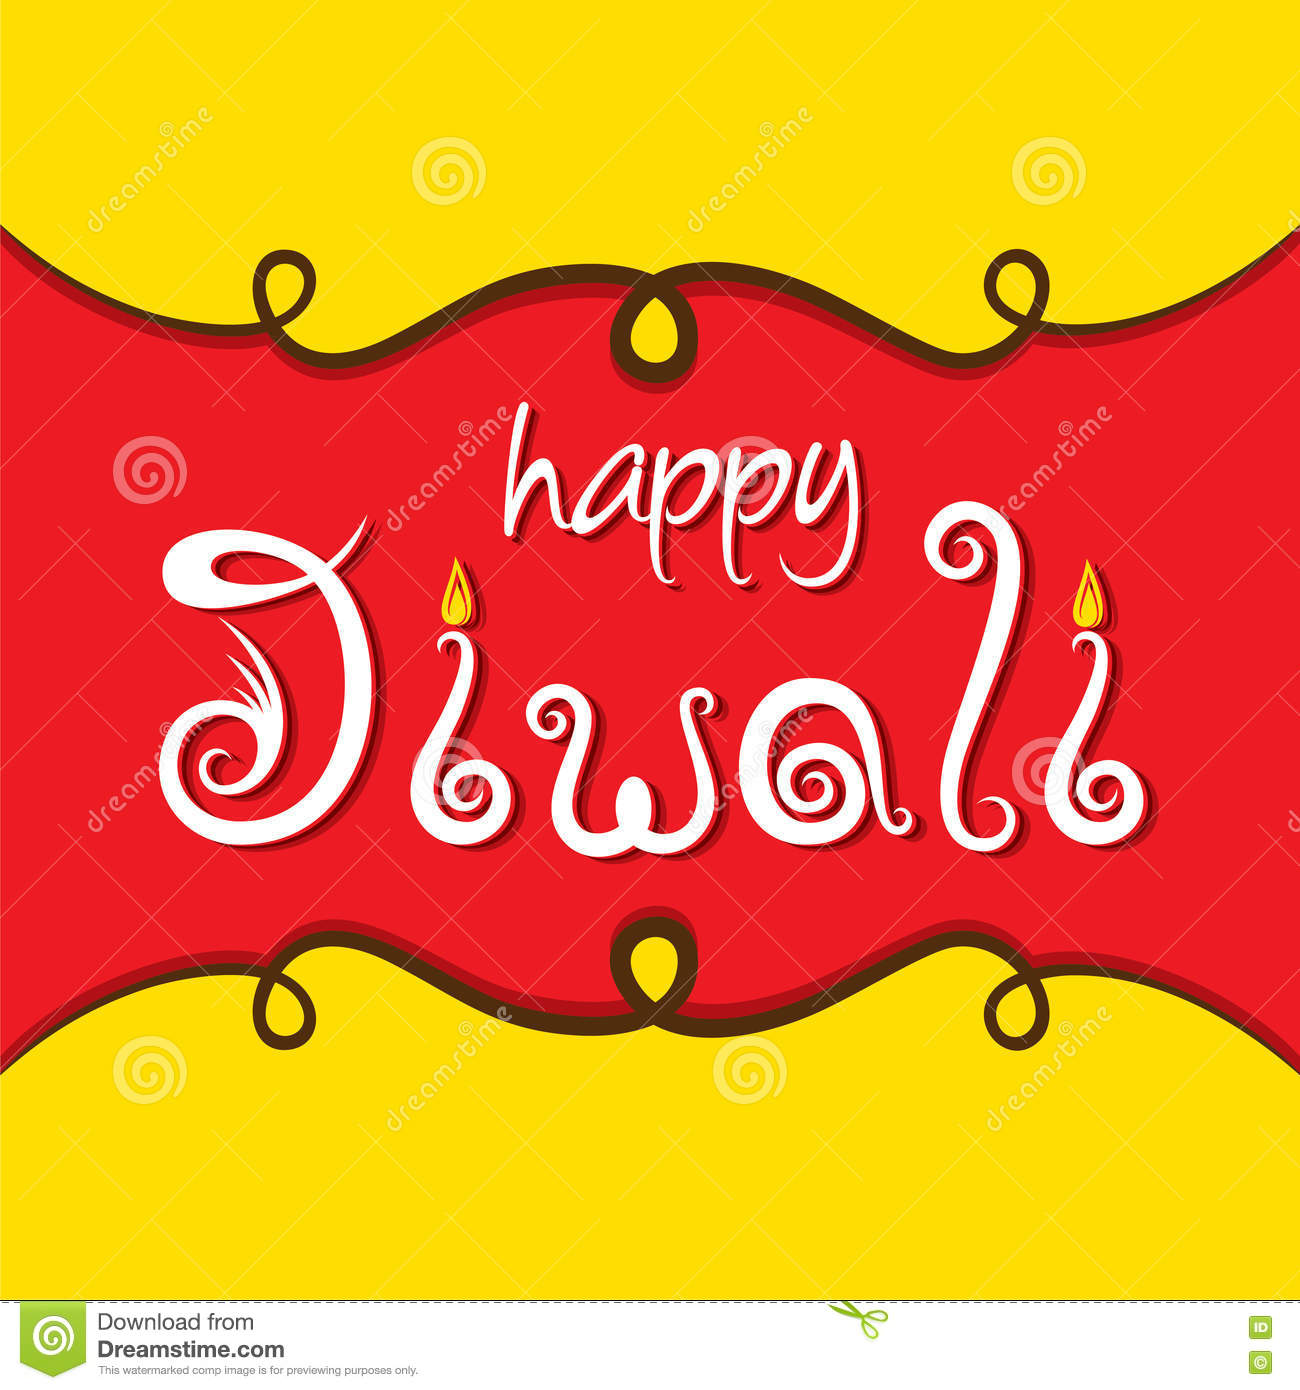 Happy diwali greeting card design stock vector illustration of happy diwali greeting card design m4hsunfo